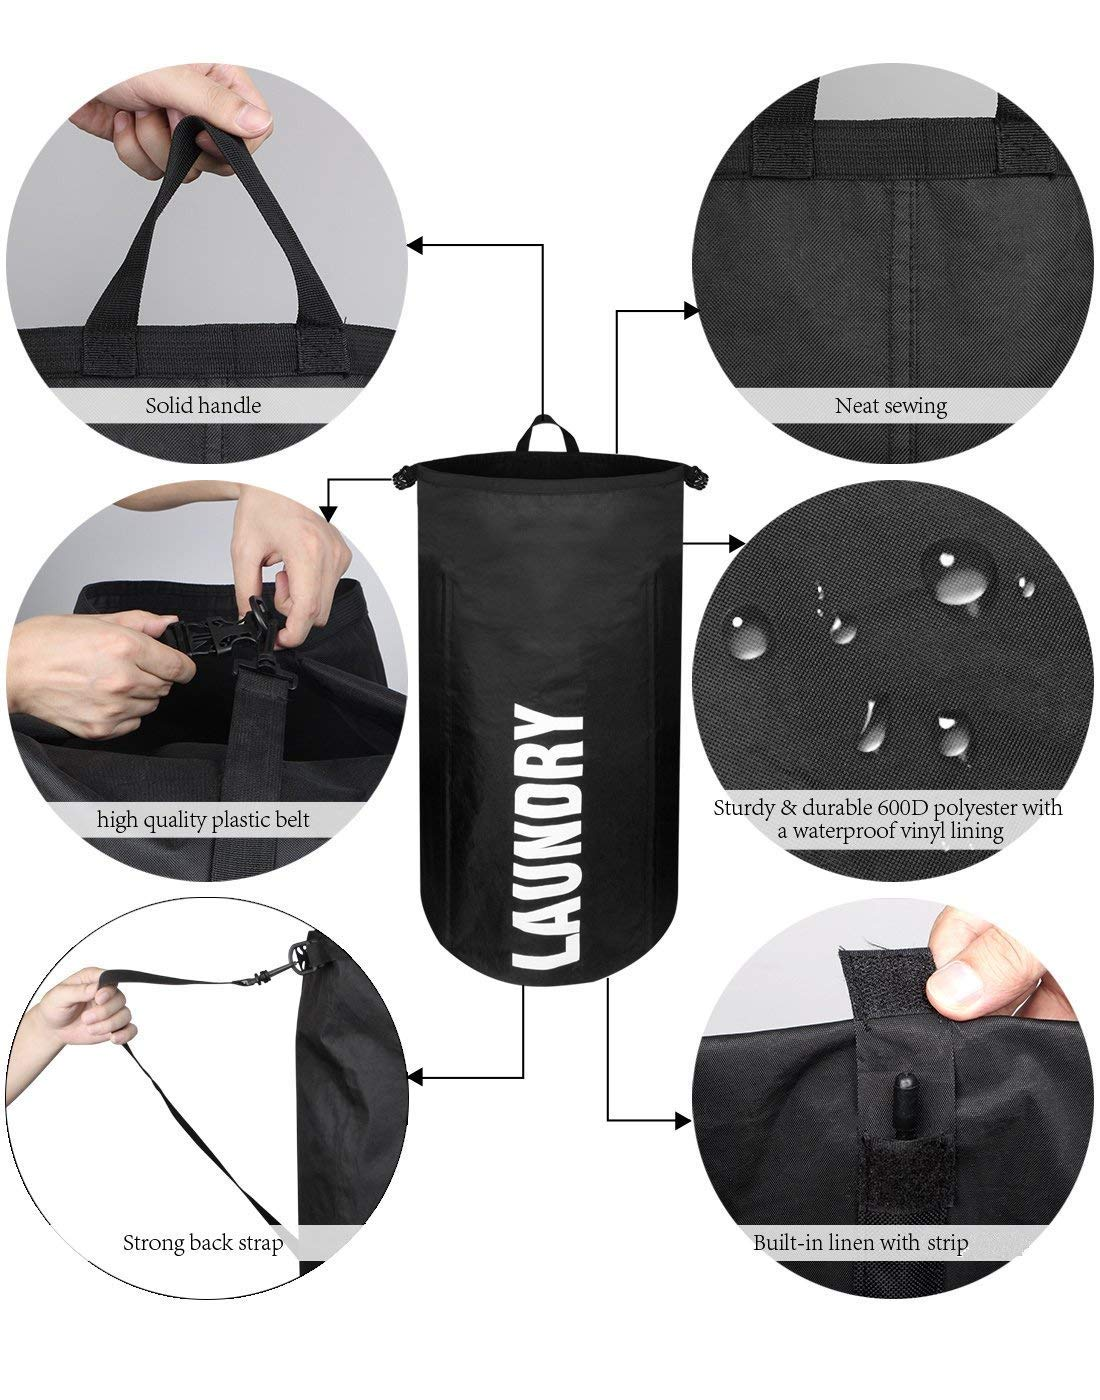 WOWLIVE Large Laundry Bag Laundry Backpack Hanging Laundry Hamper  Adjustable Shoulder Straps Camping Bag Waterproof Durable ... f24866ef76cba